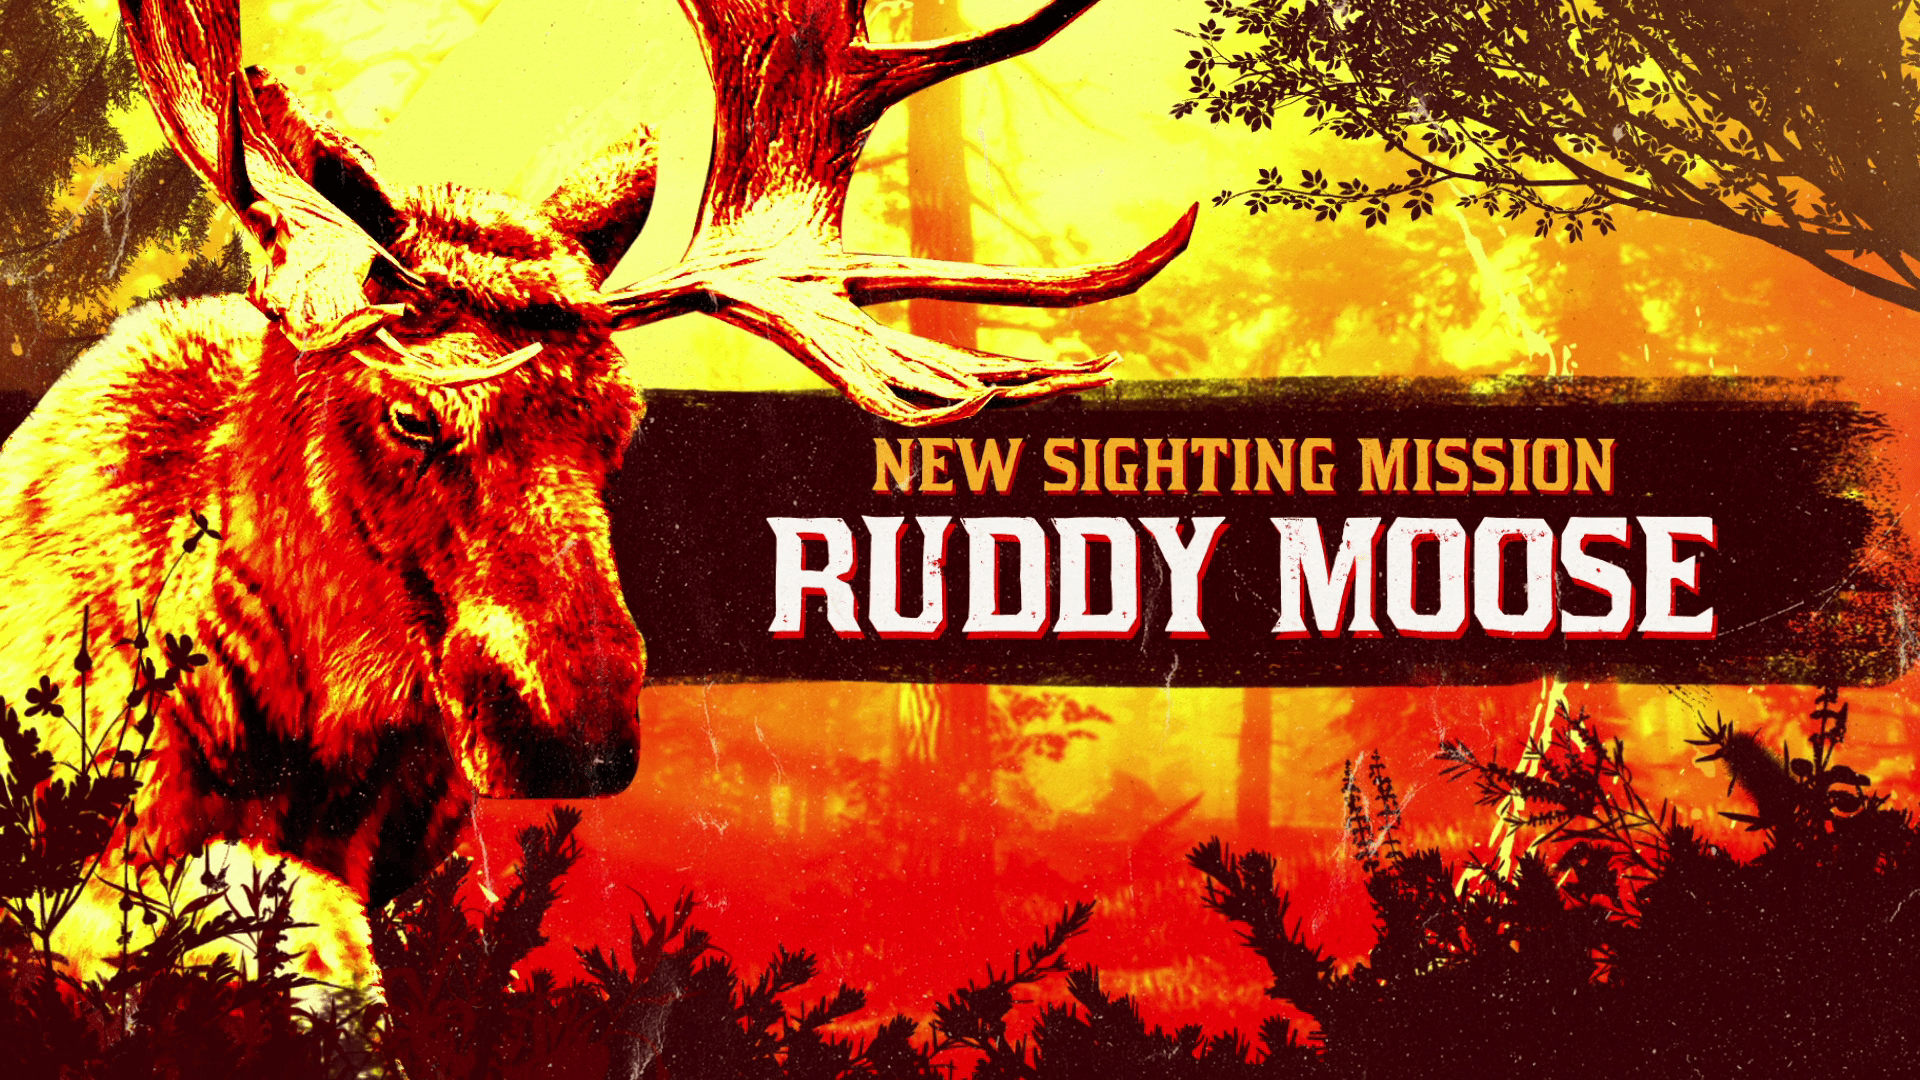 Red Dead Online: Legendary Ruddy Moose, New Featured Series, Bonuses, Benefits & more